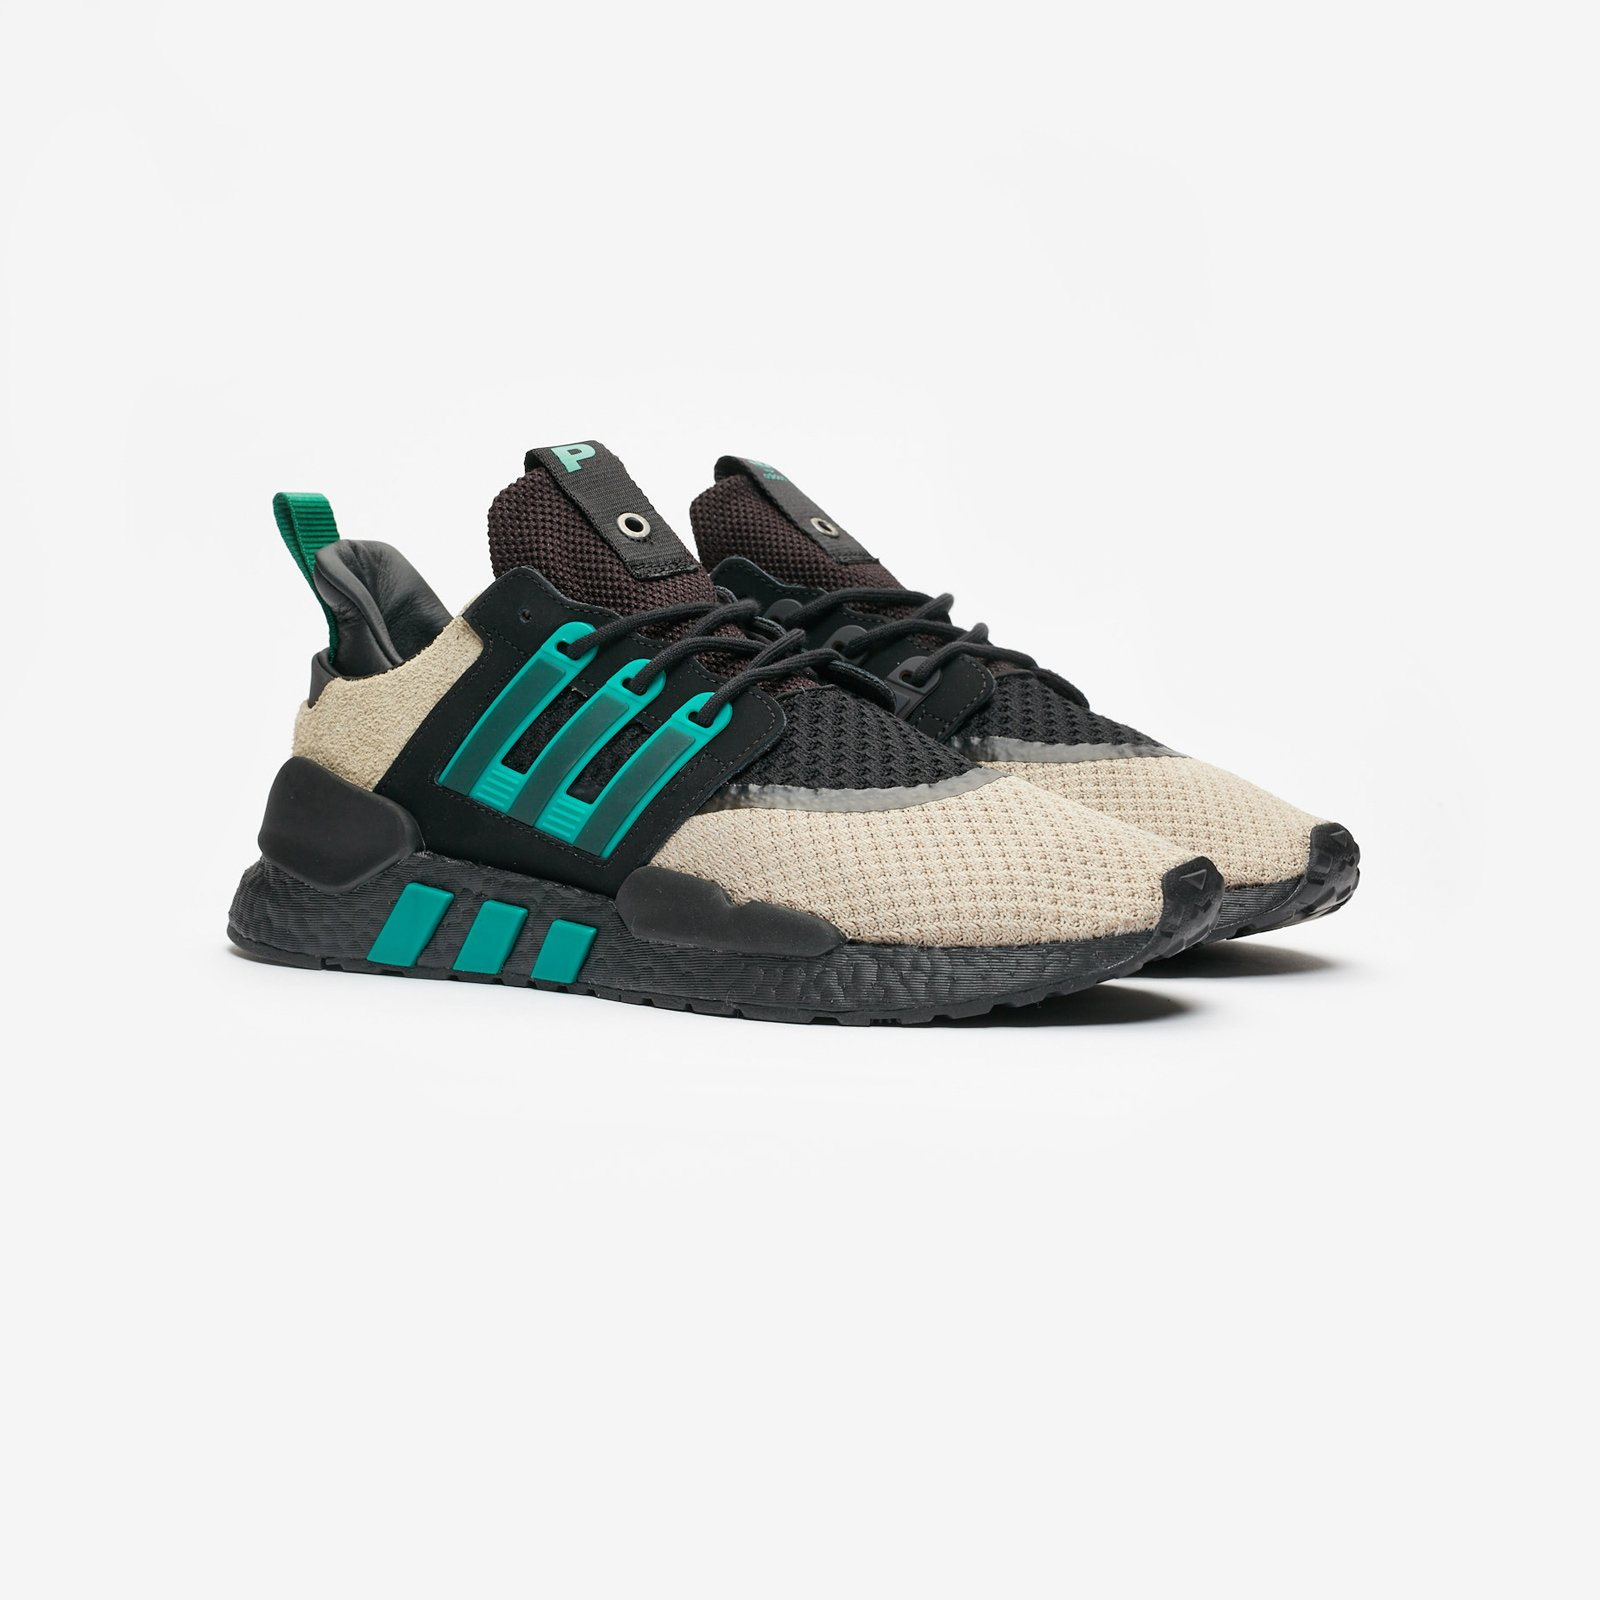 detailed look 61817 6ac6a adidas eqt adventure shoes